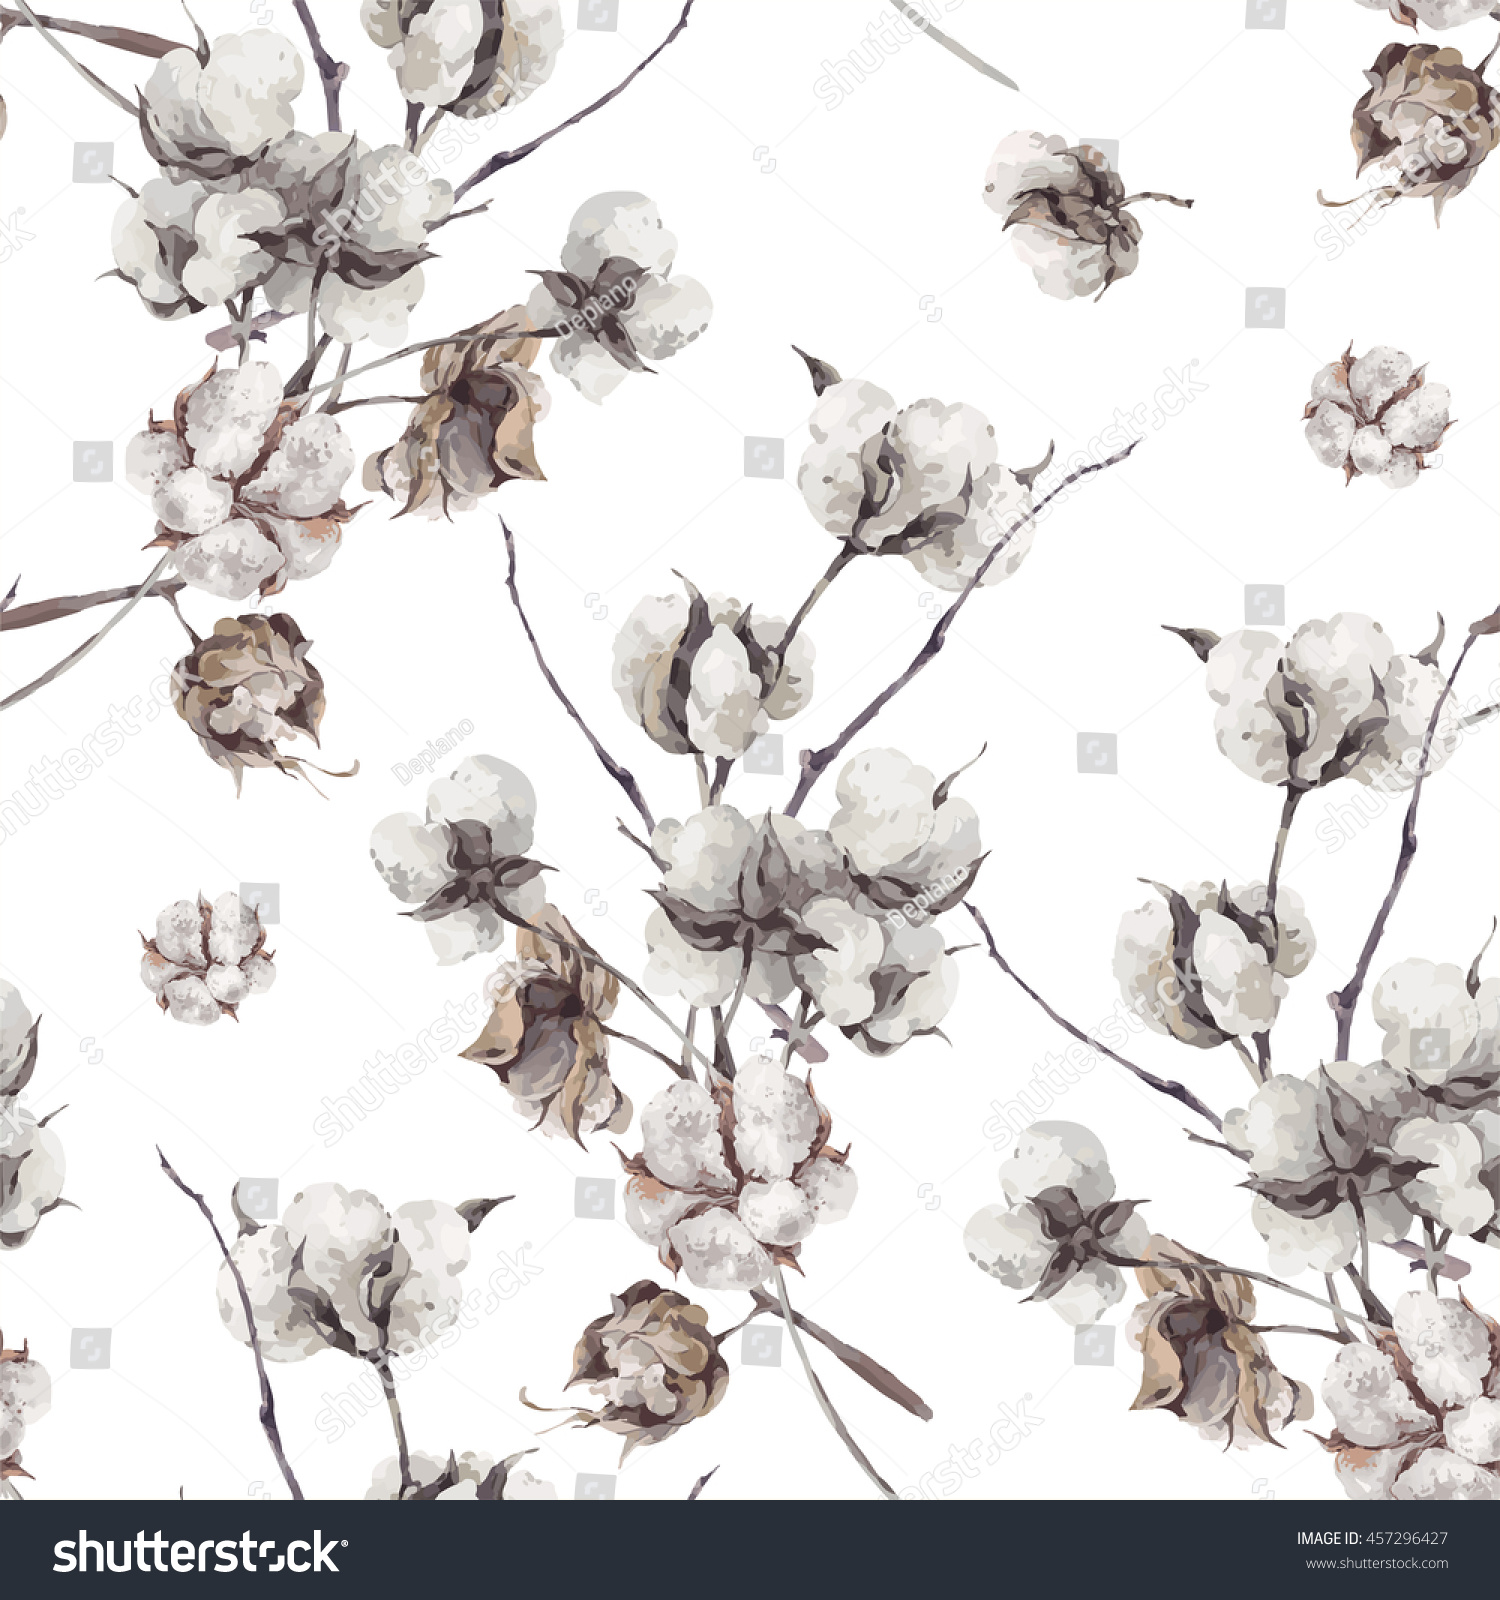 Vintage vector bouquet of twigs and cotton flowers. Botanical illustrations. Seamless pattern.